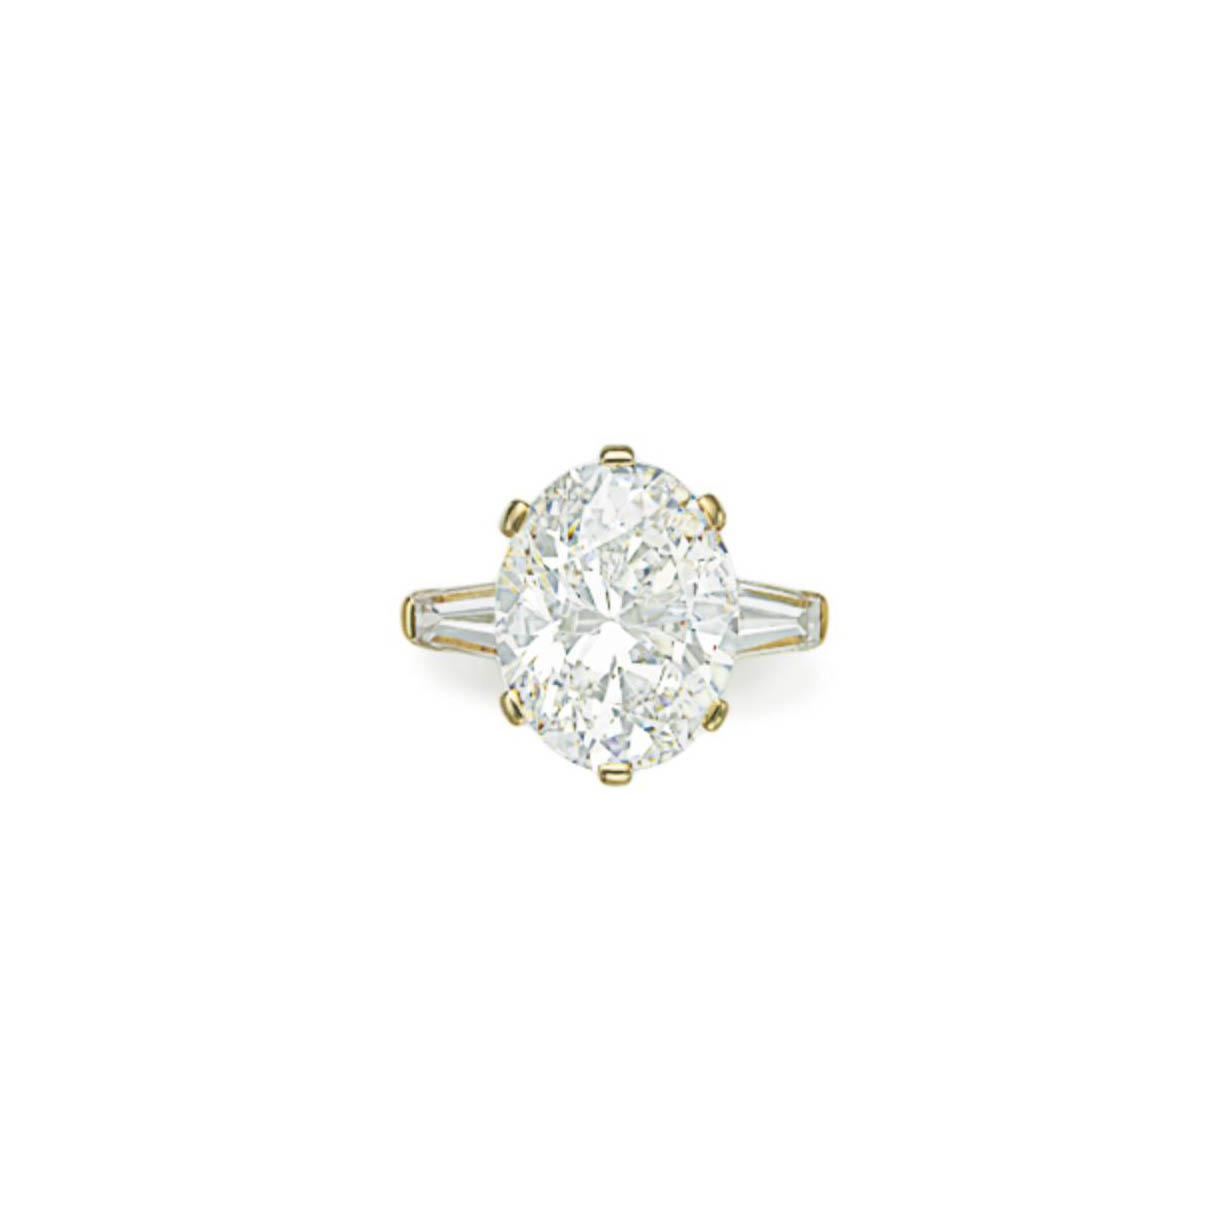 A DIAMOND RING, BY VAN CLEEF A